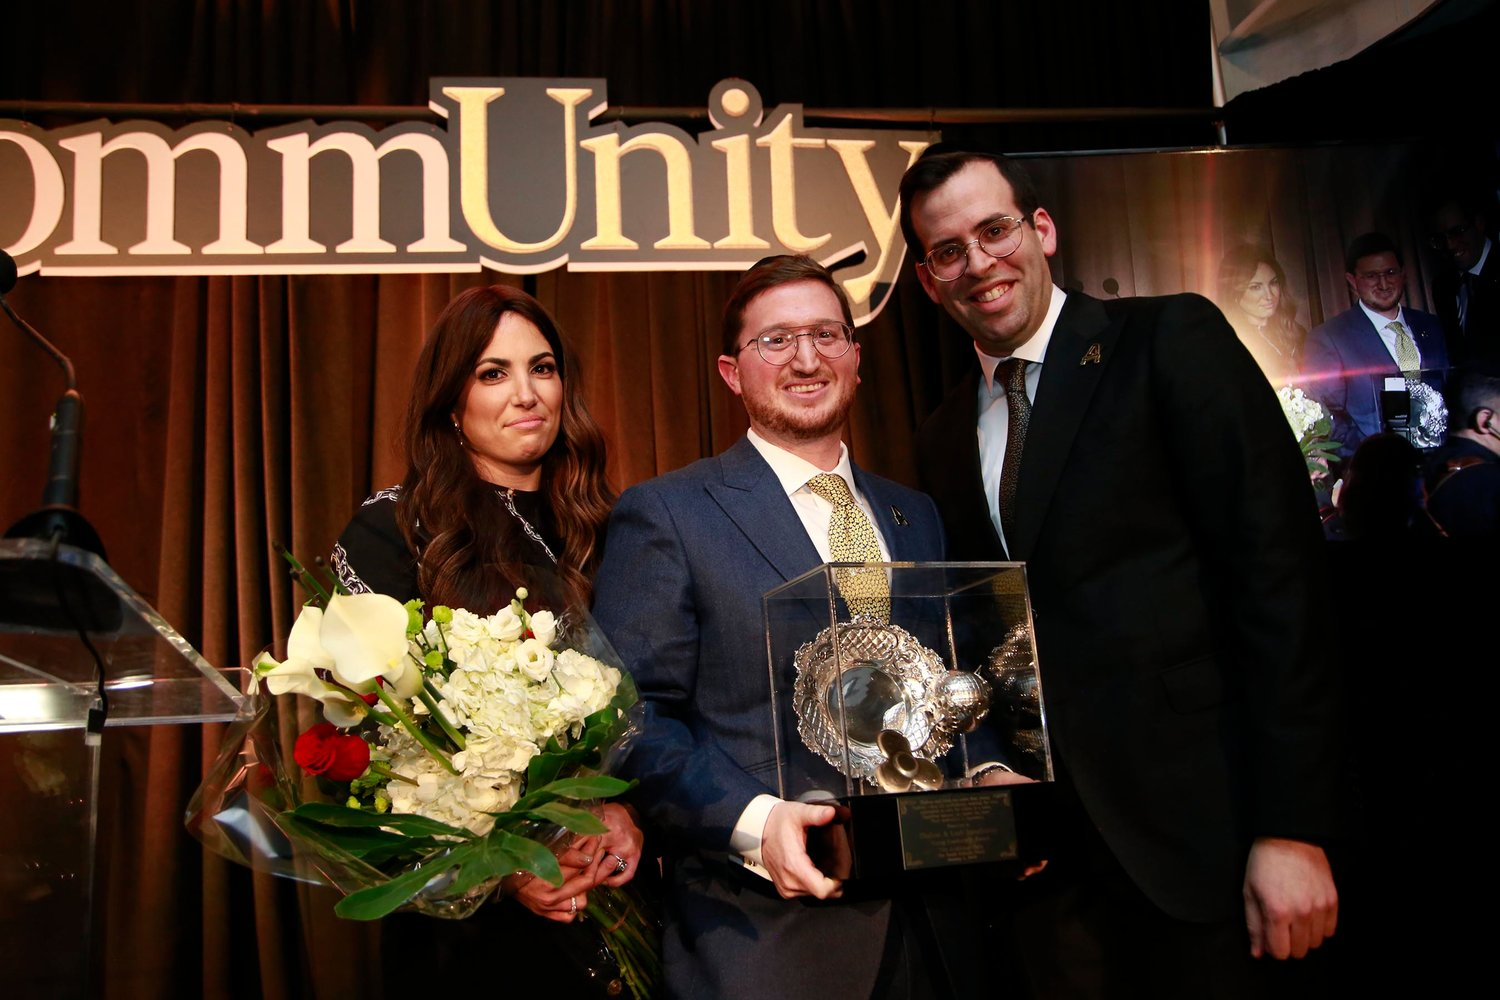 Achiezer's Young Leadership Award was presented to Leah and Shalom Jaroslawicz by Rabbi Boruch Bender, right.